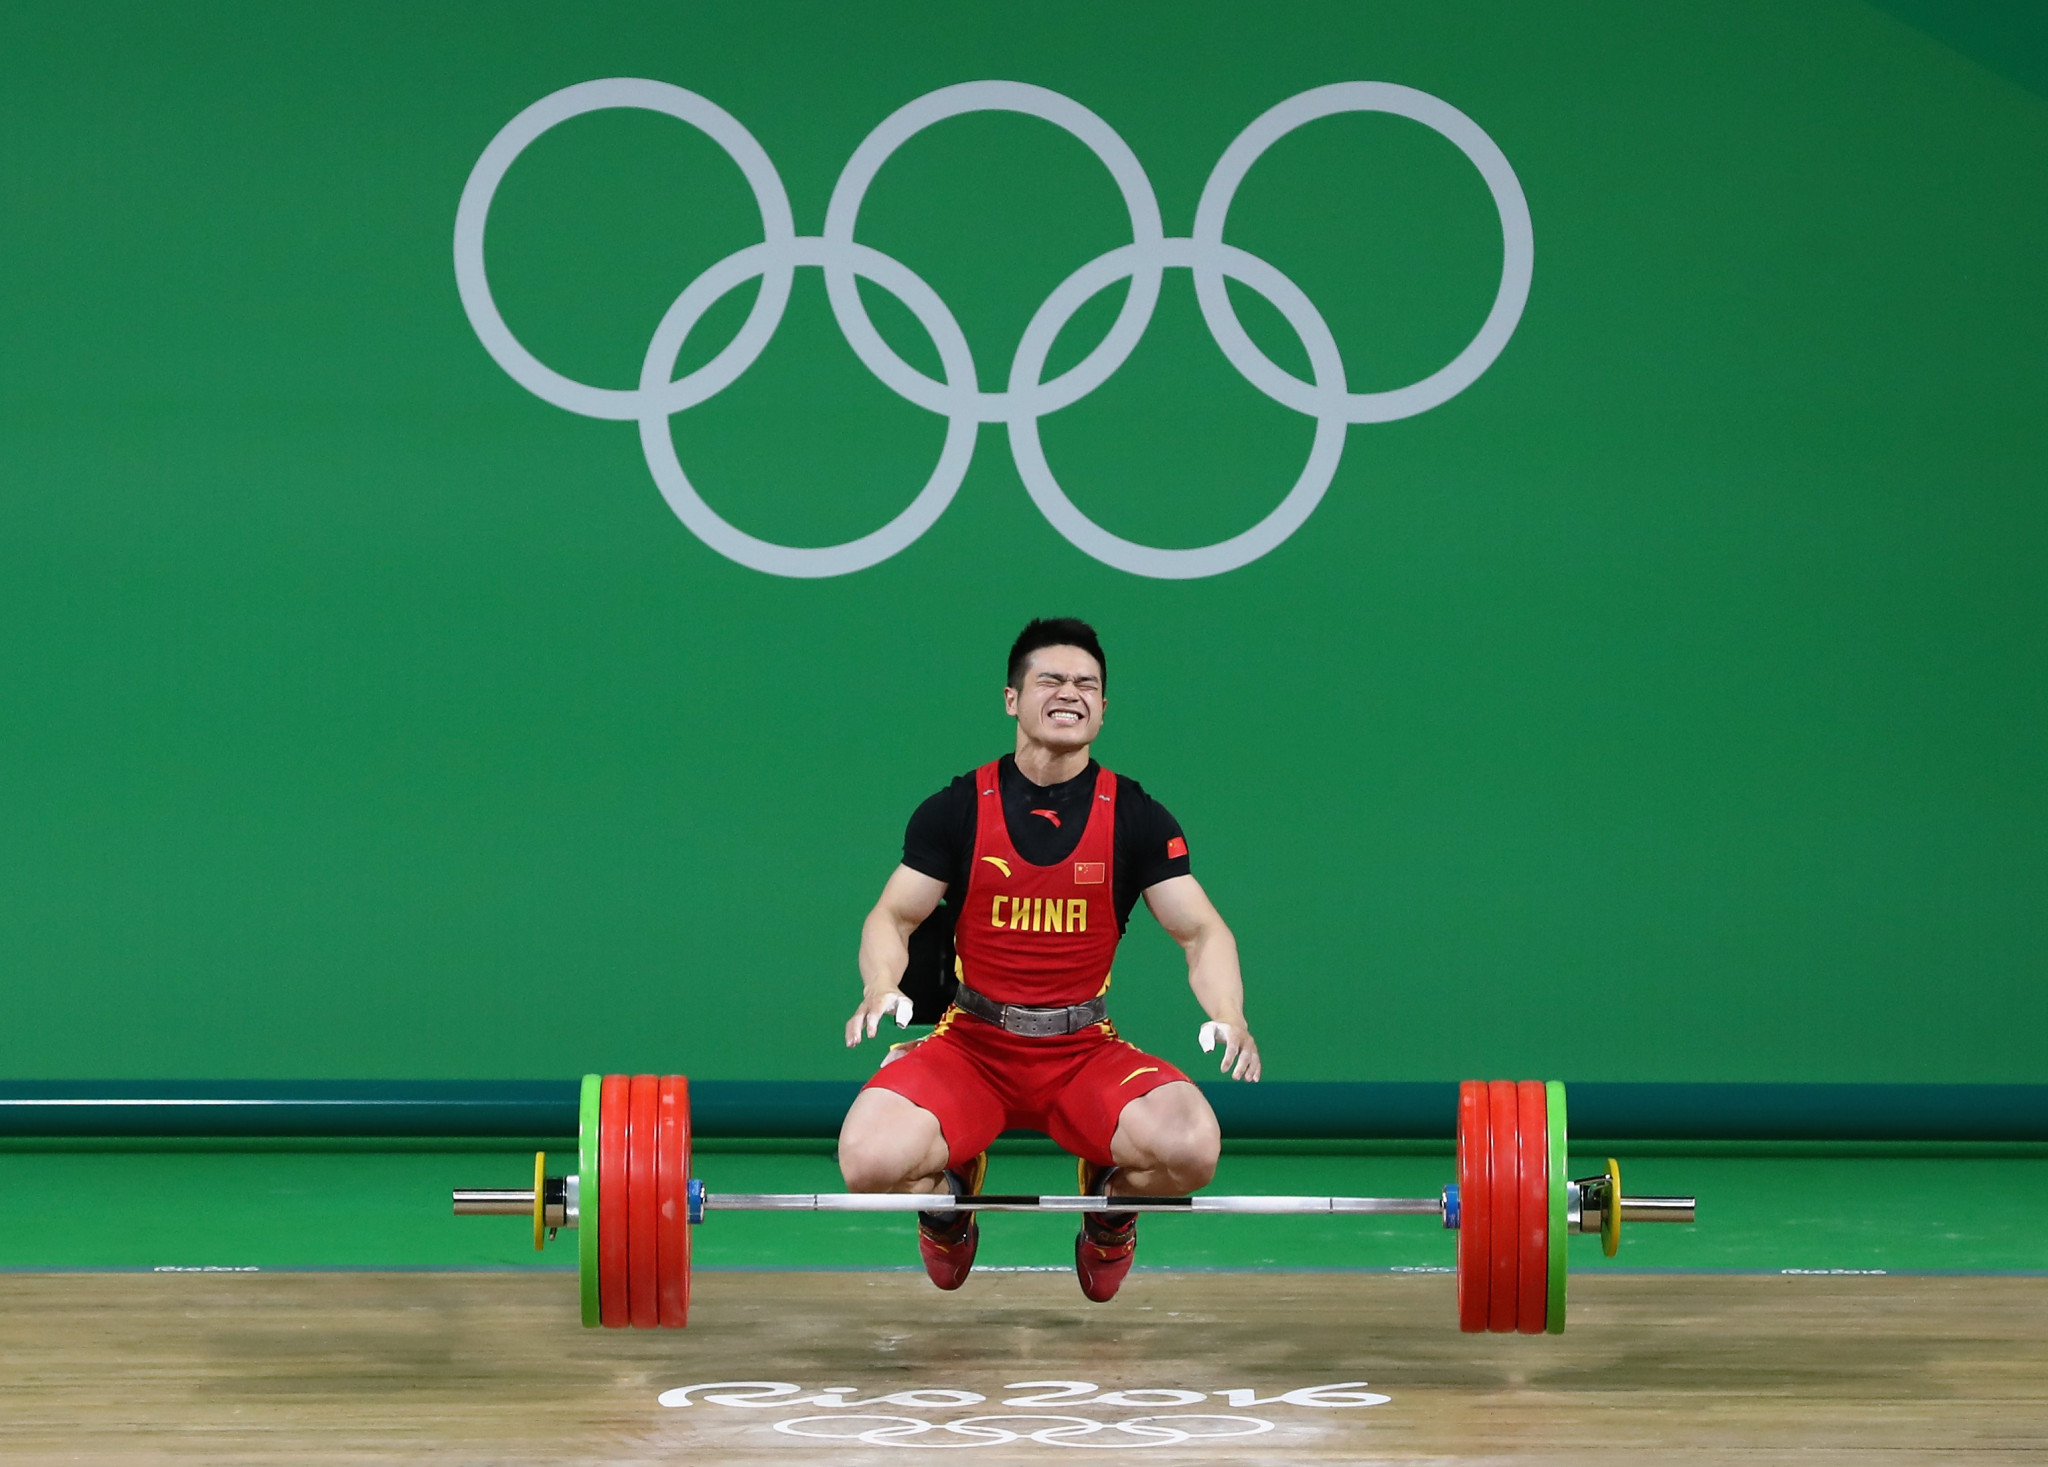 China is hoping to appear in weightlifting at the Asian Games ©Getty Images